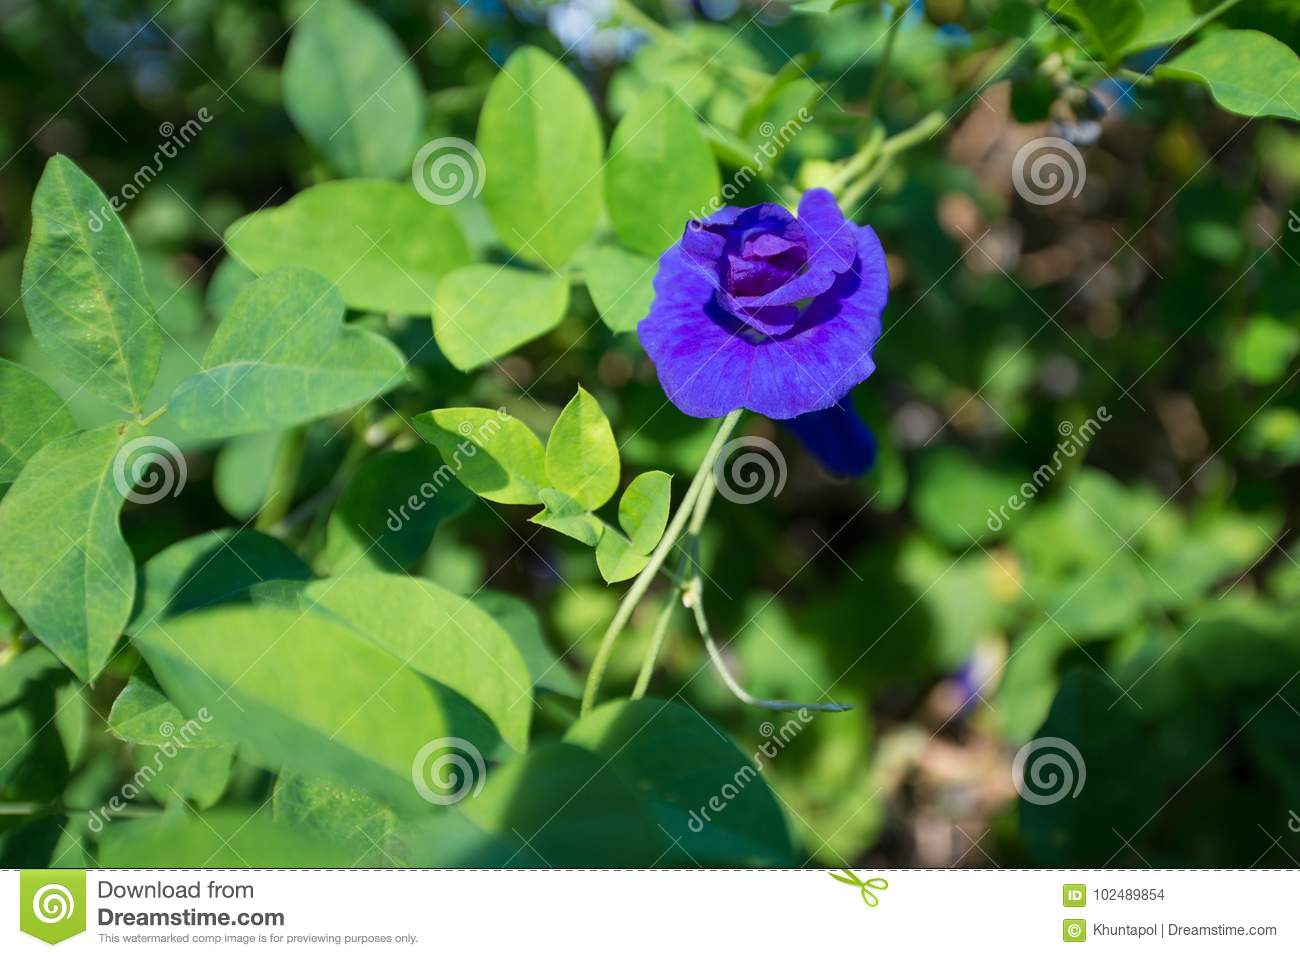 Butterfly pea or blue pea vine flower stock photo image of food butterfly pea or blue pea vine flower izmirmasajfo Images